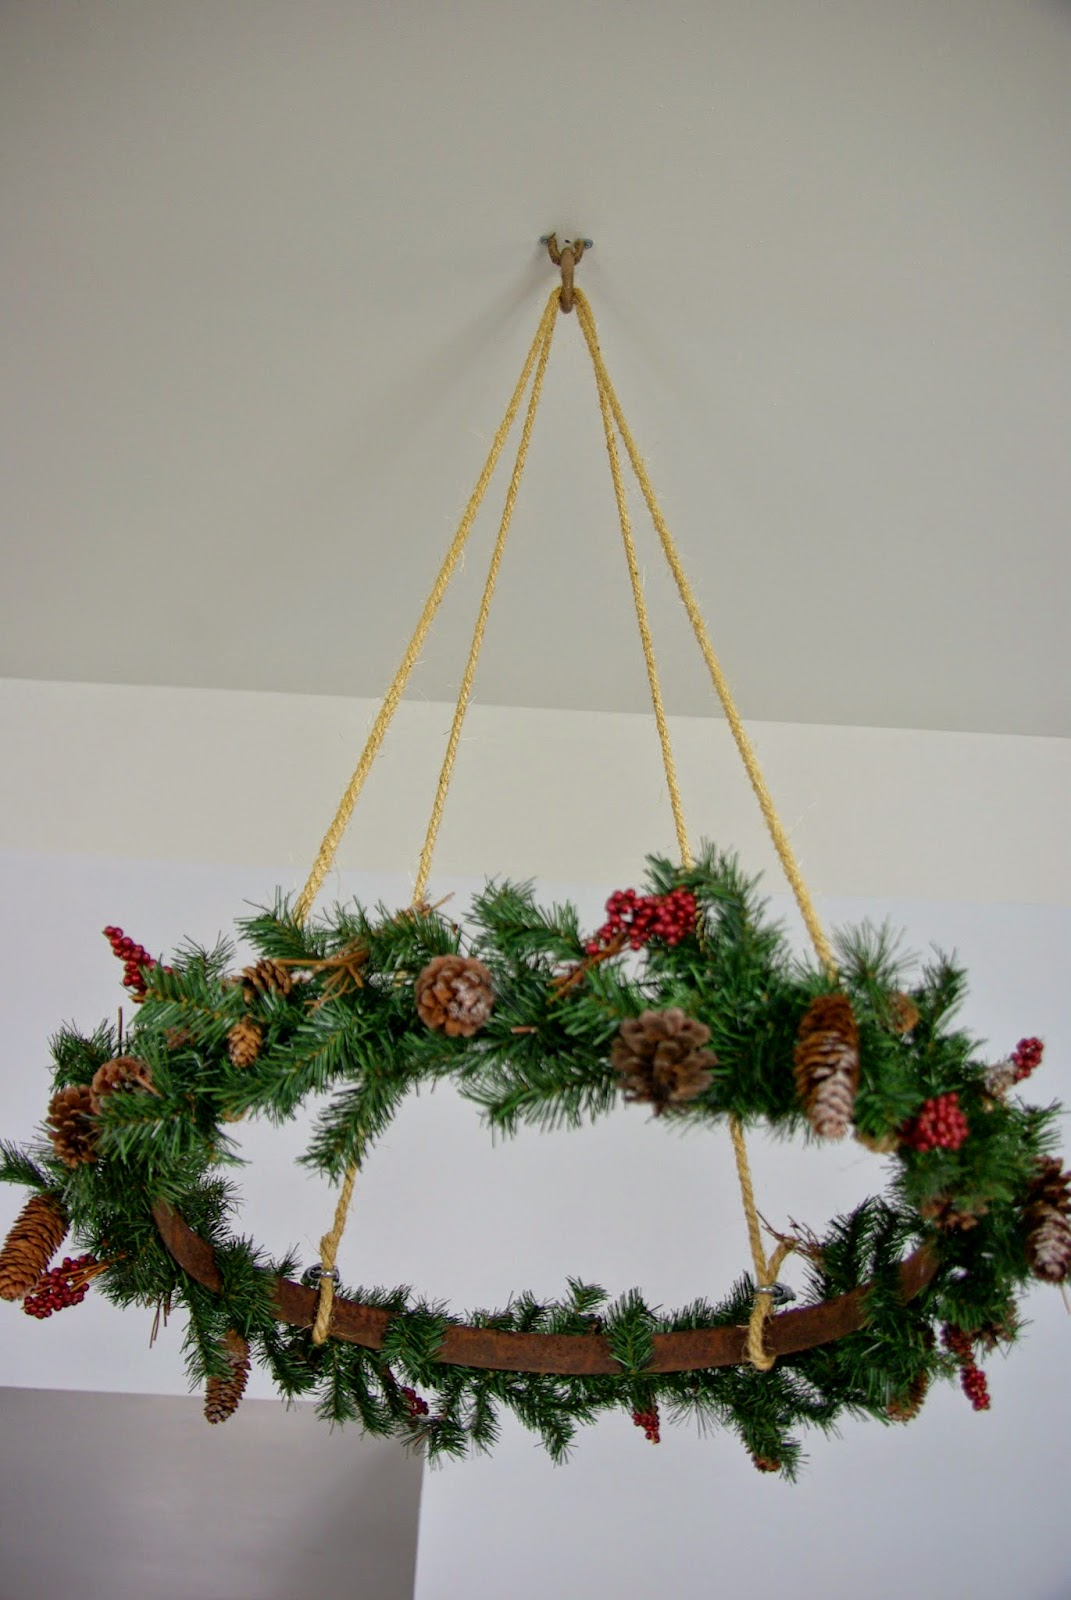 Hanging Christmas Decorations Diy.Ceiling Hanging Christmas Wreath Our House Now A Home